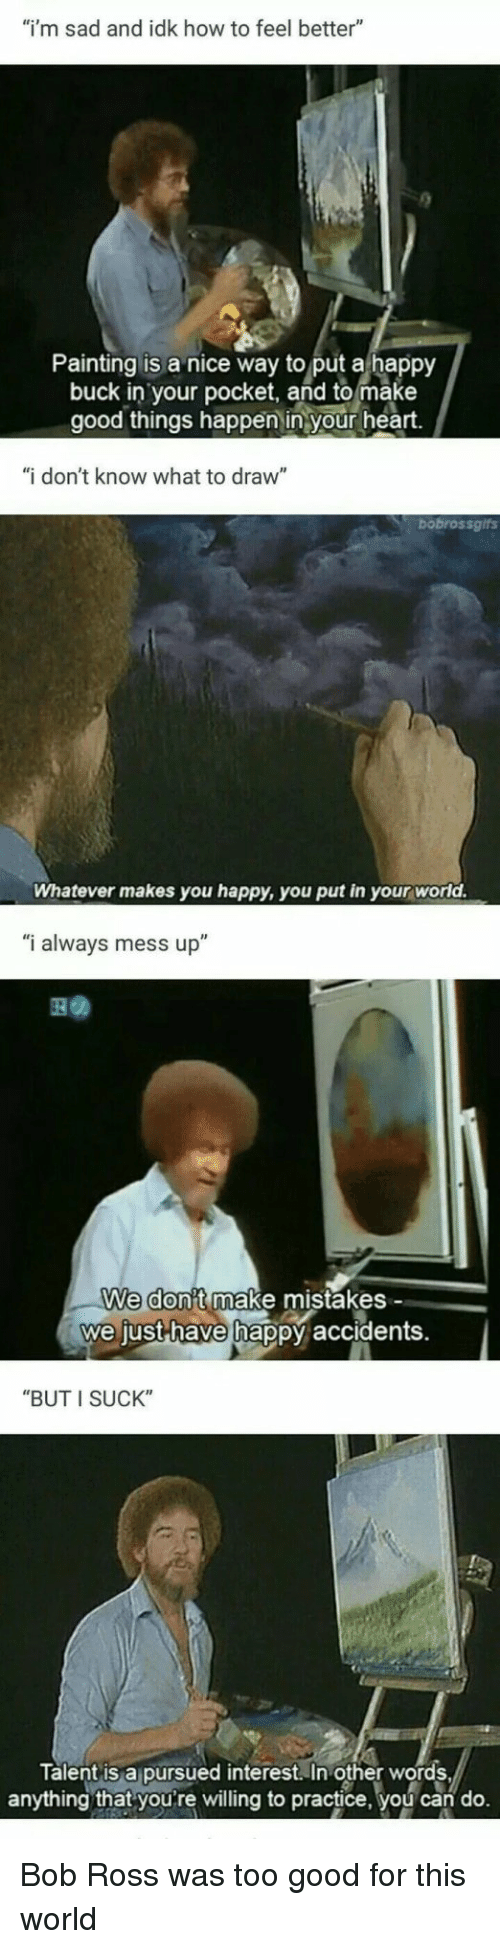 "Bob Ross, Good, and Happy: ""i'm sad and idk how to feel better""  Painting is a nice way to put a happy  buck in your pocket, and to make  good things happen in your heart.  ""i don't know what to draw""  bobrossgifs  Whatever makes you happy, you put in your world.  ""i always mess up""  We don't make mistakes -  we just-have hap  py accidents.  ""BUT I SUCK""  Talent is a pursued interest. In other words  anything that youre willing to practice, you can do. Bob Ross was too good for this world"